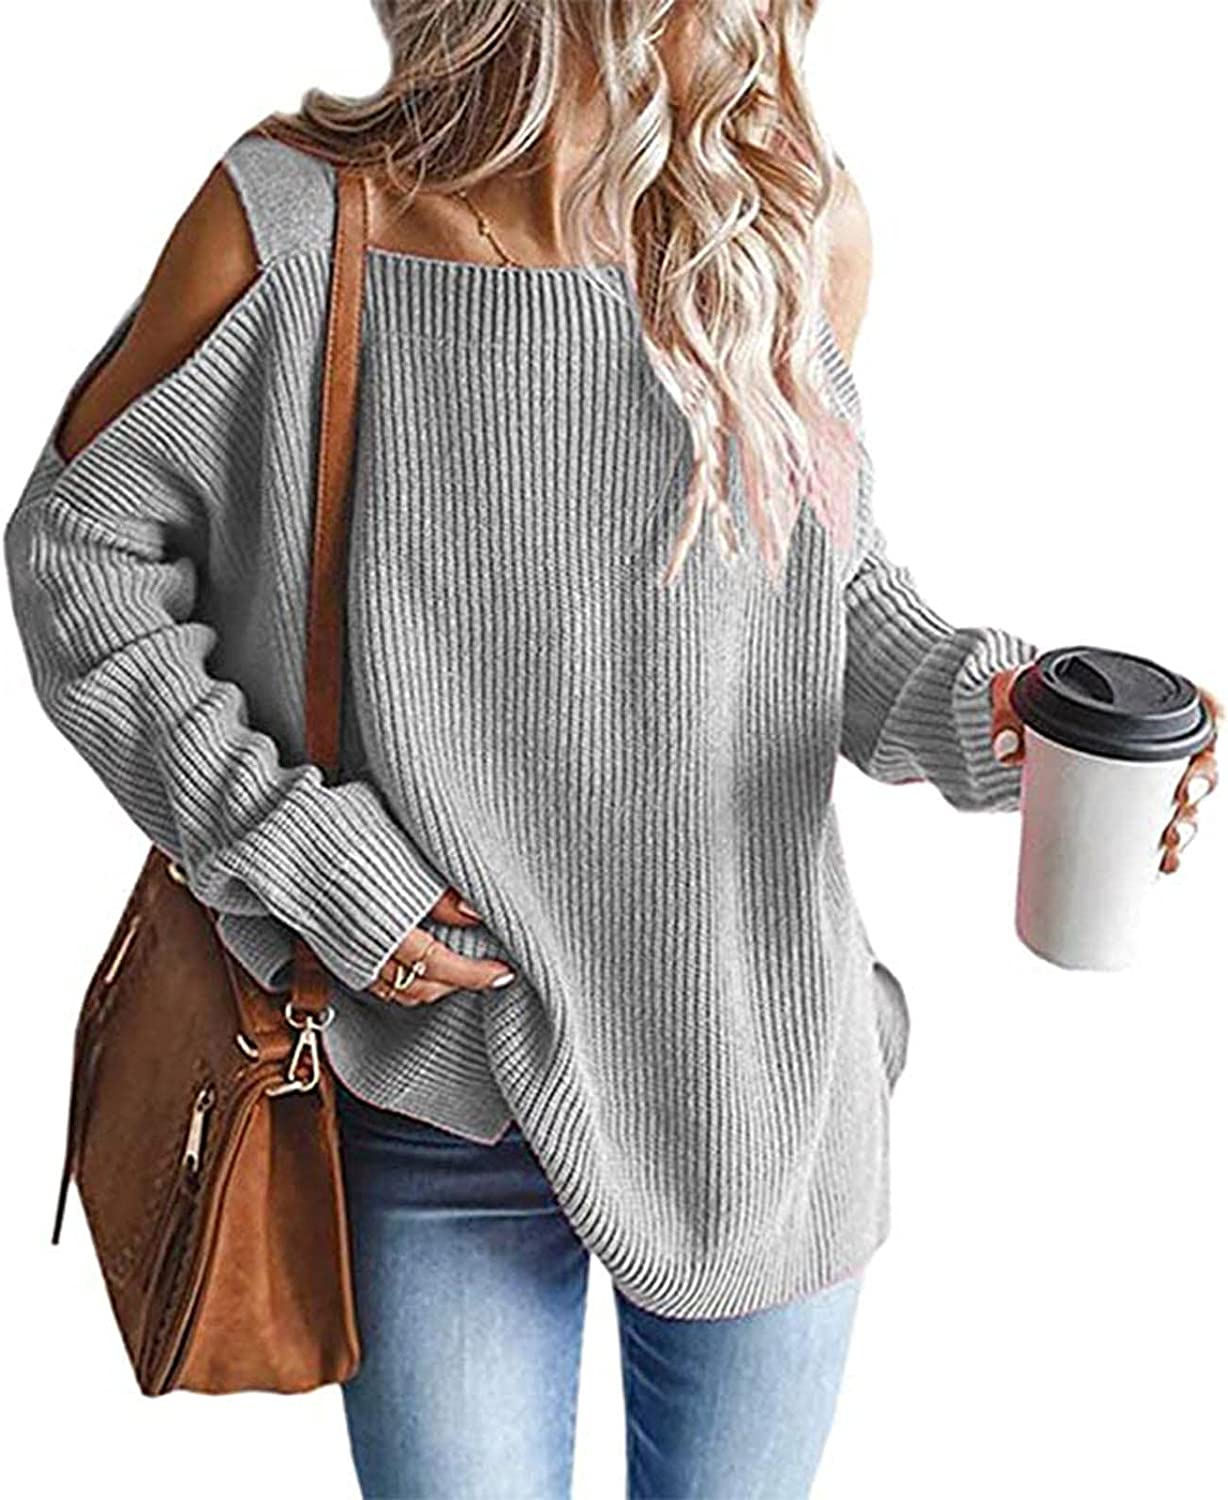 Women's Sexy Square Neck Sweater Cold Shoulder Knit Top Jumper Batwing Sleeve Loose Oversized Chunky Knitted Pullover